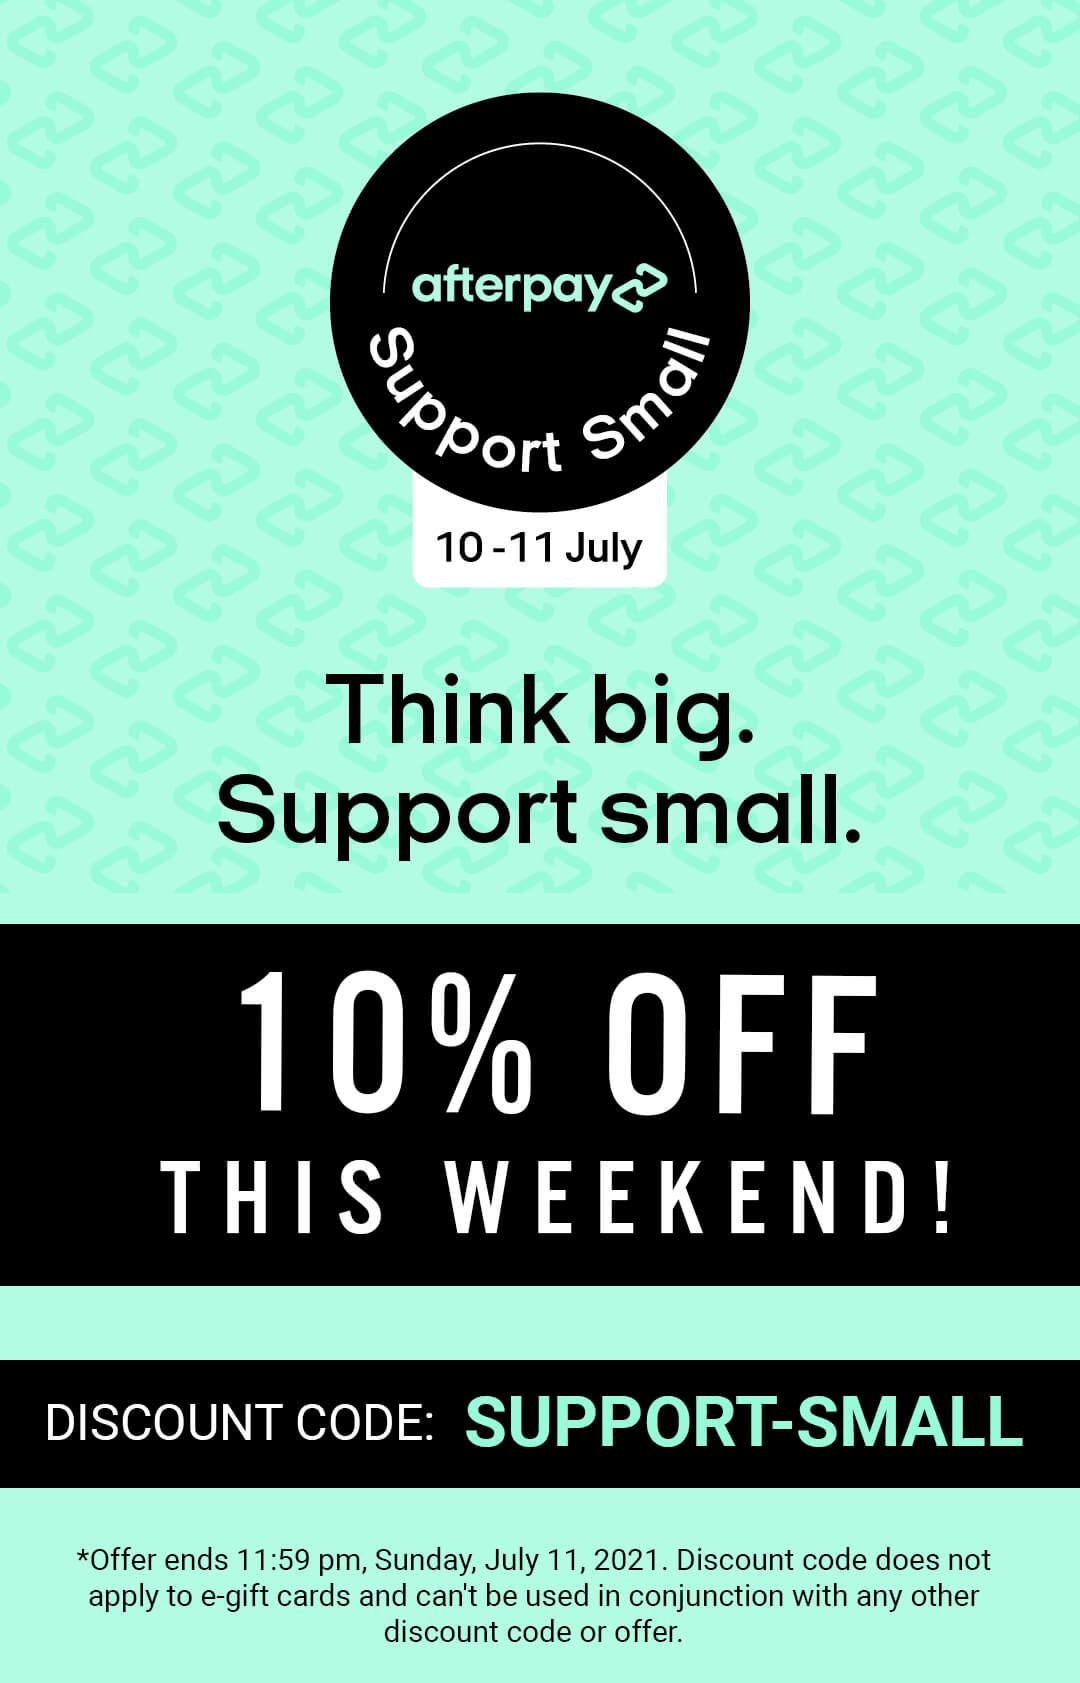 AfterPay Support Small promo - 10% off discount code SUPPORT-SMALL